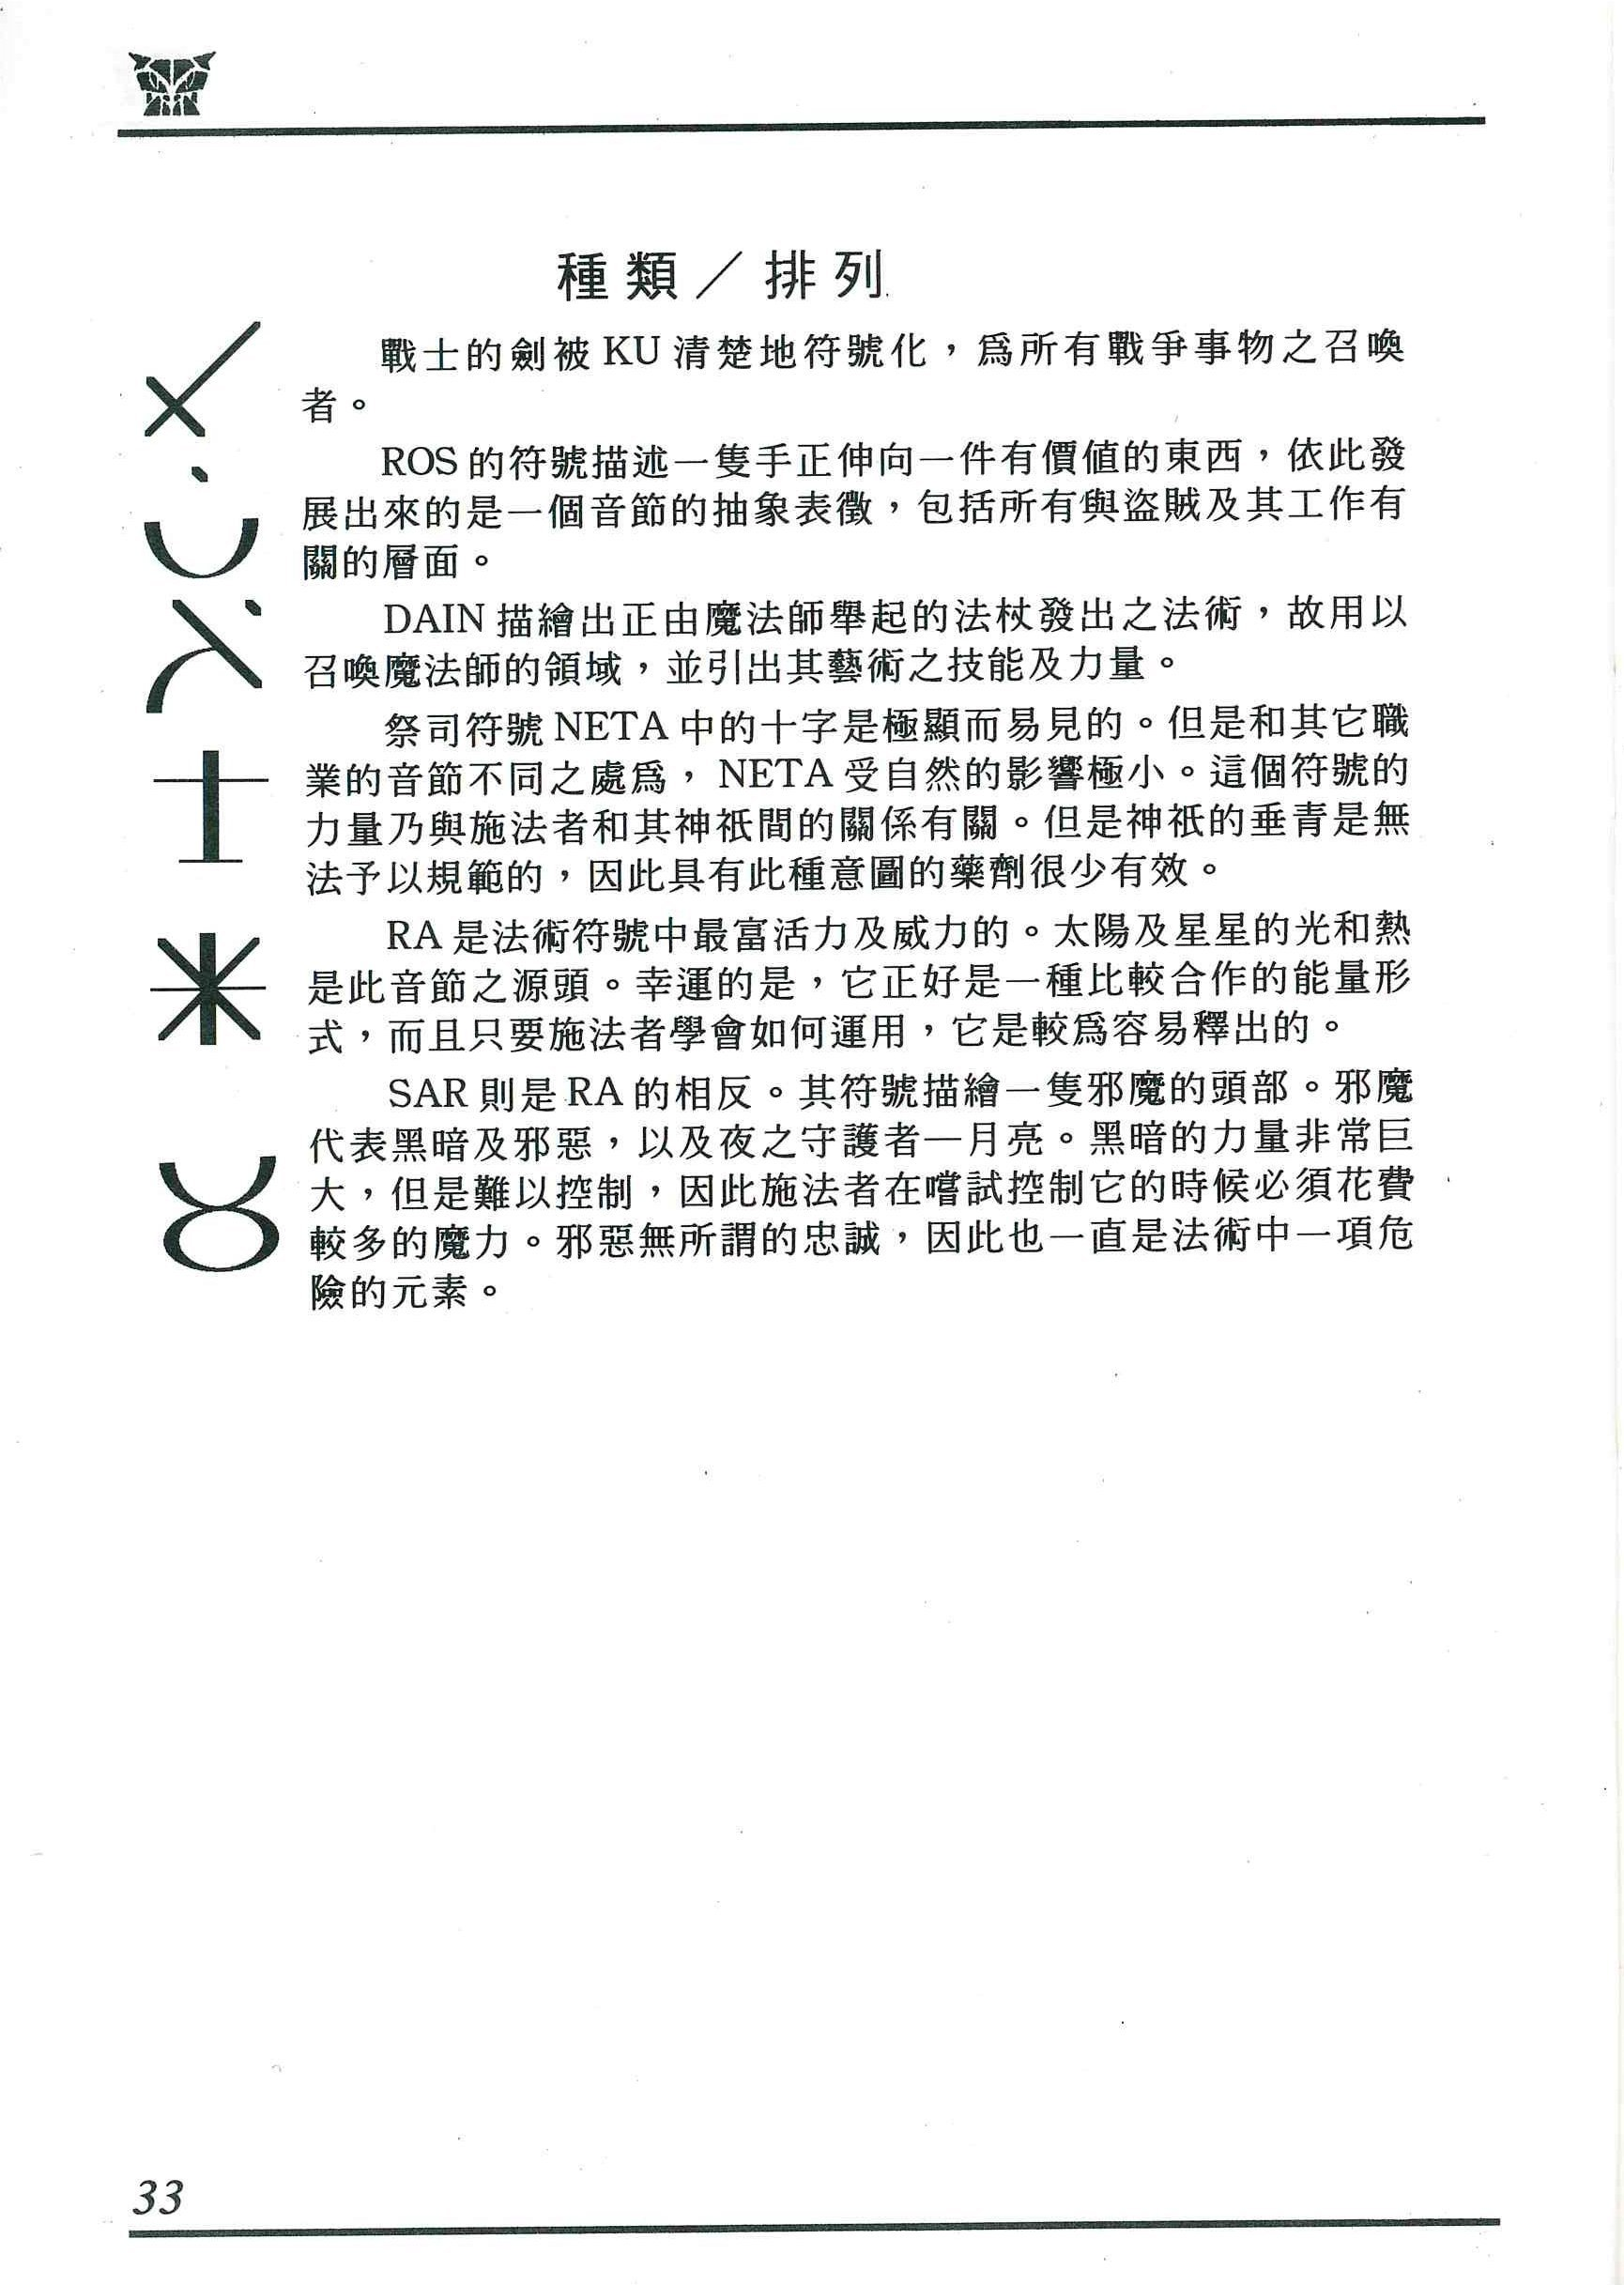 Game - Dungeon Master - CN - PC - Manual - Page 040 - Scan